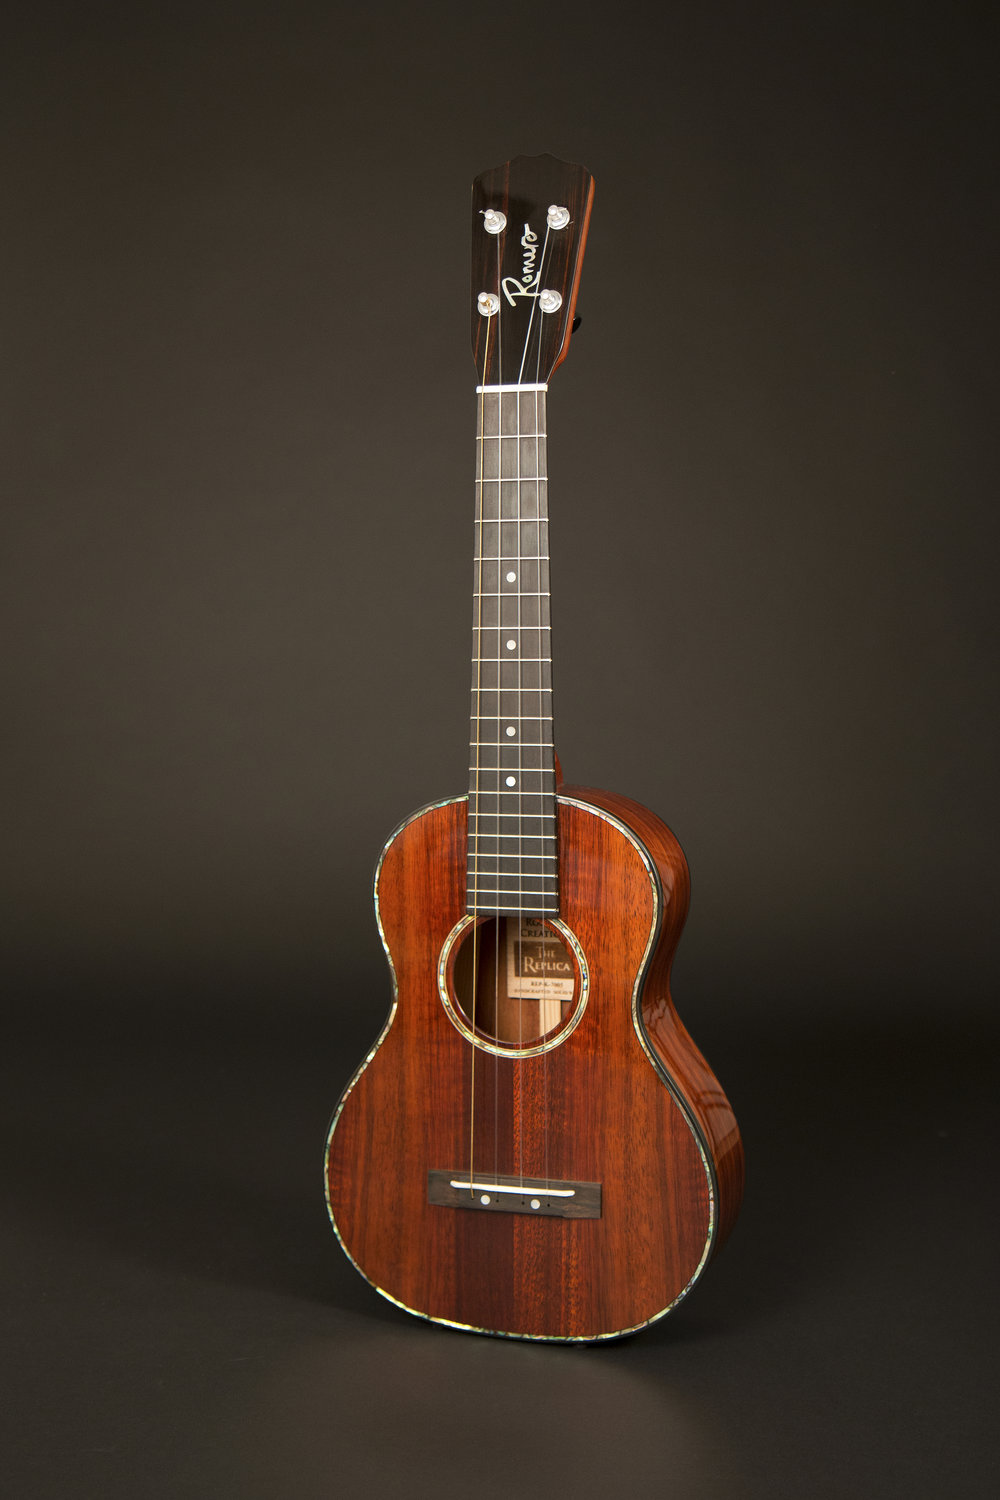 The Replica Koa